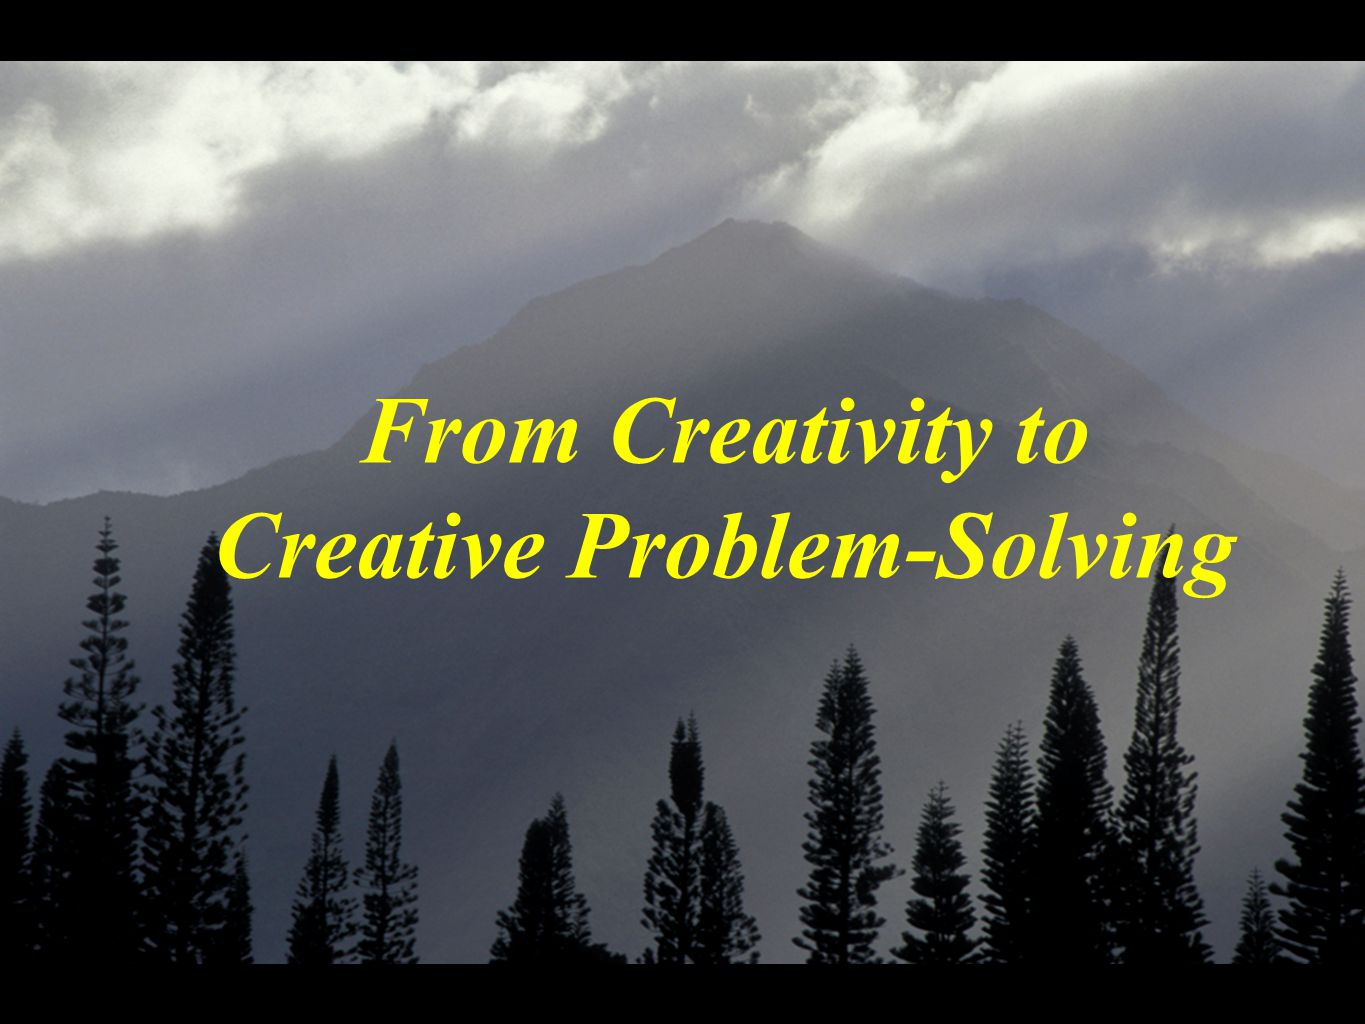 From Creativity to Creative Problem-Solving